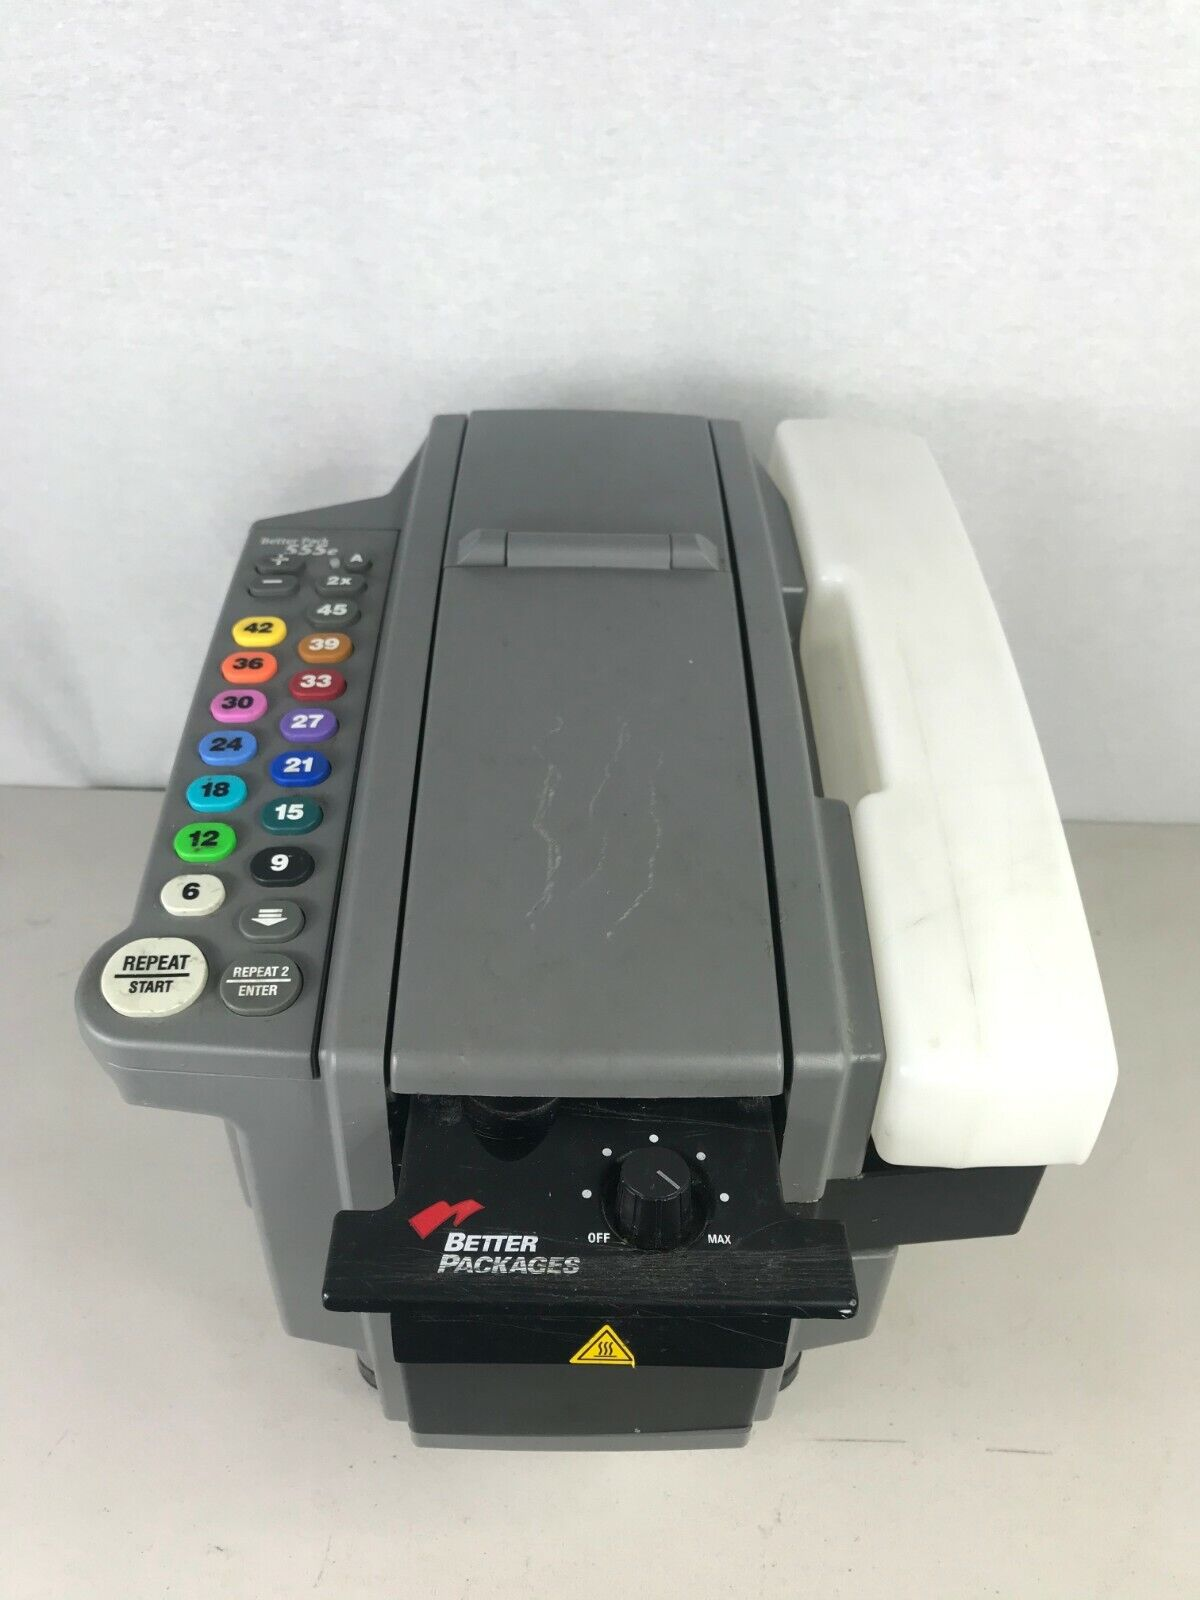 Better Pack 555e Electronic Gum Packing Tape Dispenser Working With No Issues - $600.21